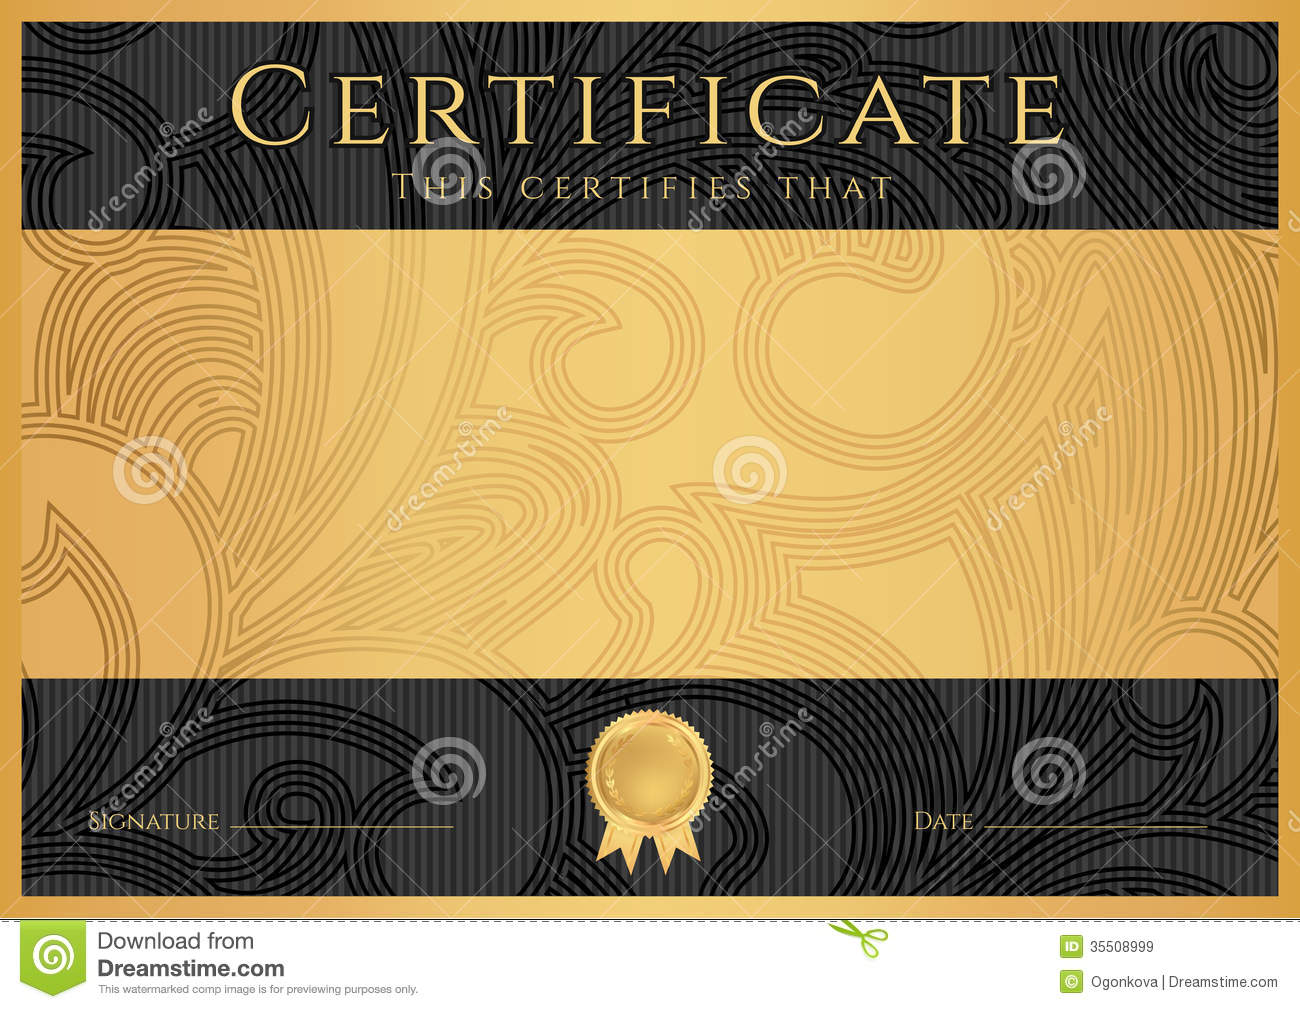 Royalty Free Stock Images: Diploma / Сertificate award template ...